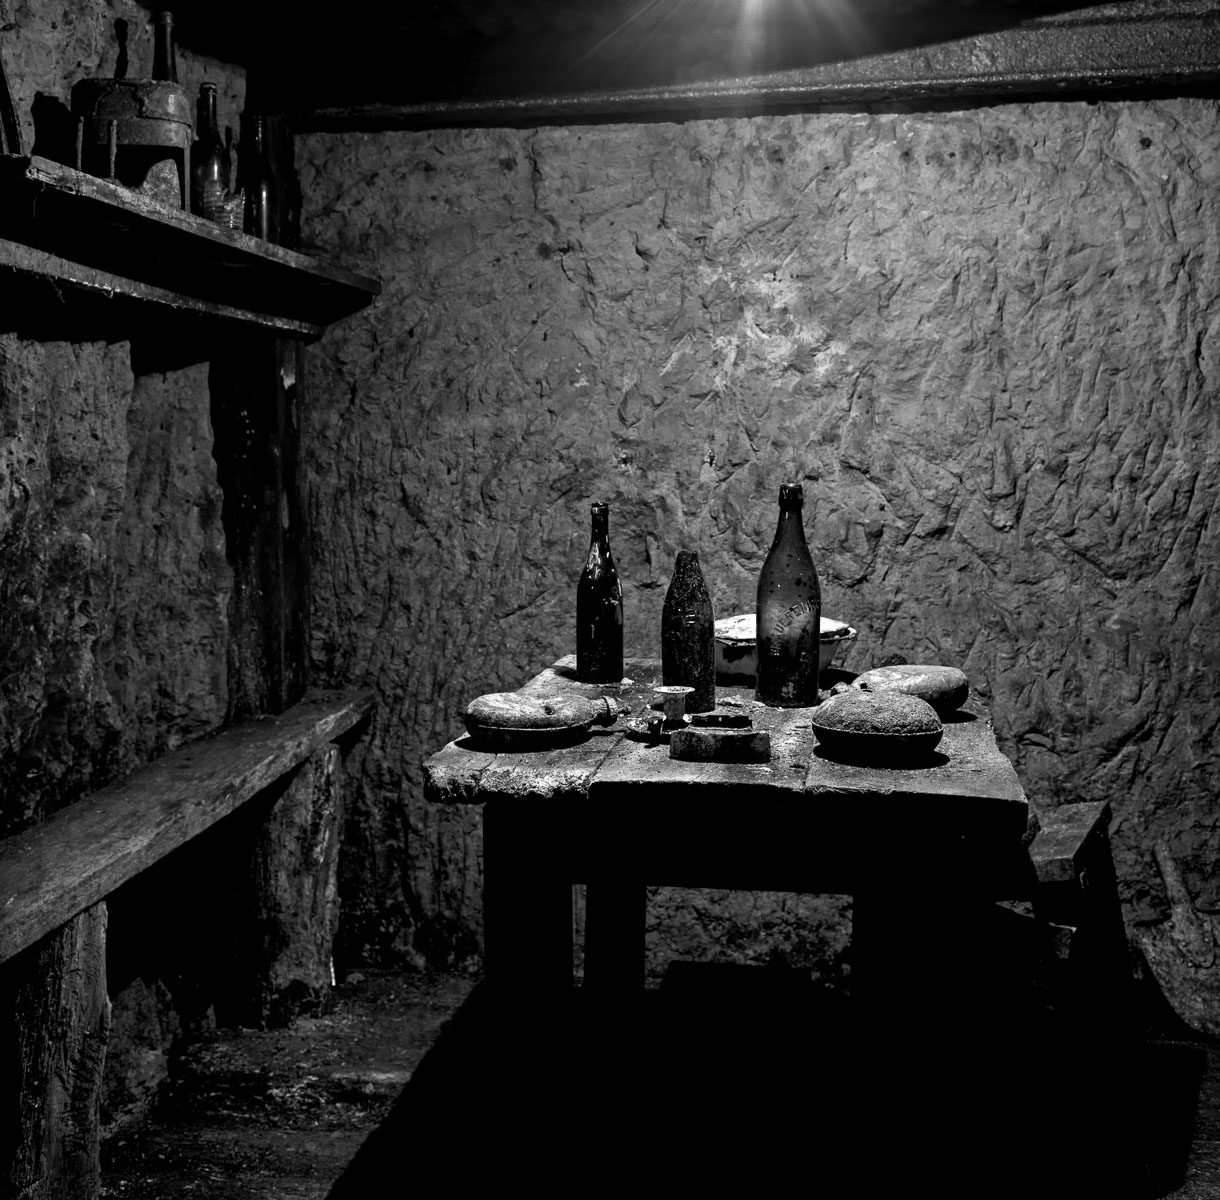 French soldiers' dining area underground with wine bottles, canteens and a serving dish. Photographed 6 December 2011. Vauquois, France. Terms of Use: These photos are for one-time use before January 1, 2015, limited to professional media outlets and blogs, in connection with an accompanying story about Jeffrey Gusky, his work and WWI-related discoveries. Stories appearing during the license period may be archived online by the media outlet or blog who published the story. This image is a low resolution version of the original. Higher resolution images are available by special arrangement with the artist. This image may not be modified and may not be used commercially except with a commercial license. This image is not available under any Creative Commons license. Copyright (c) 2011, Jeffrey Gusky. All Rights Reserved. Jeffrey Gusky, c/o attorney at P.O. Box 2526, Addison, TX 75001-2526. photos@jeffgusky.com .